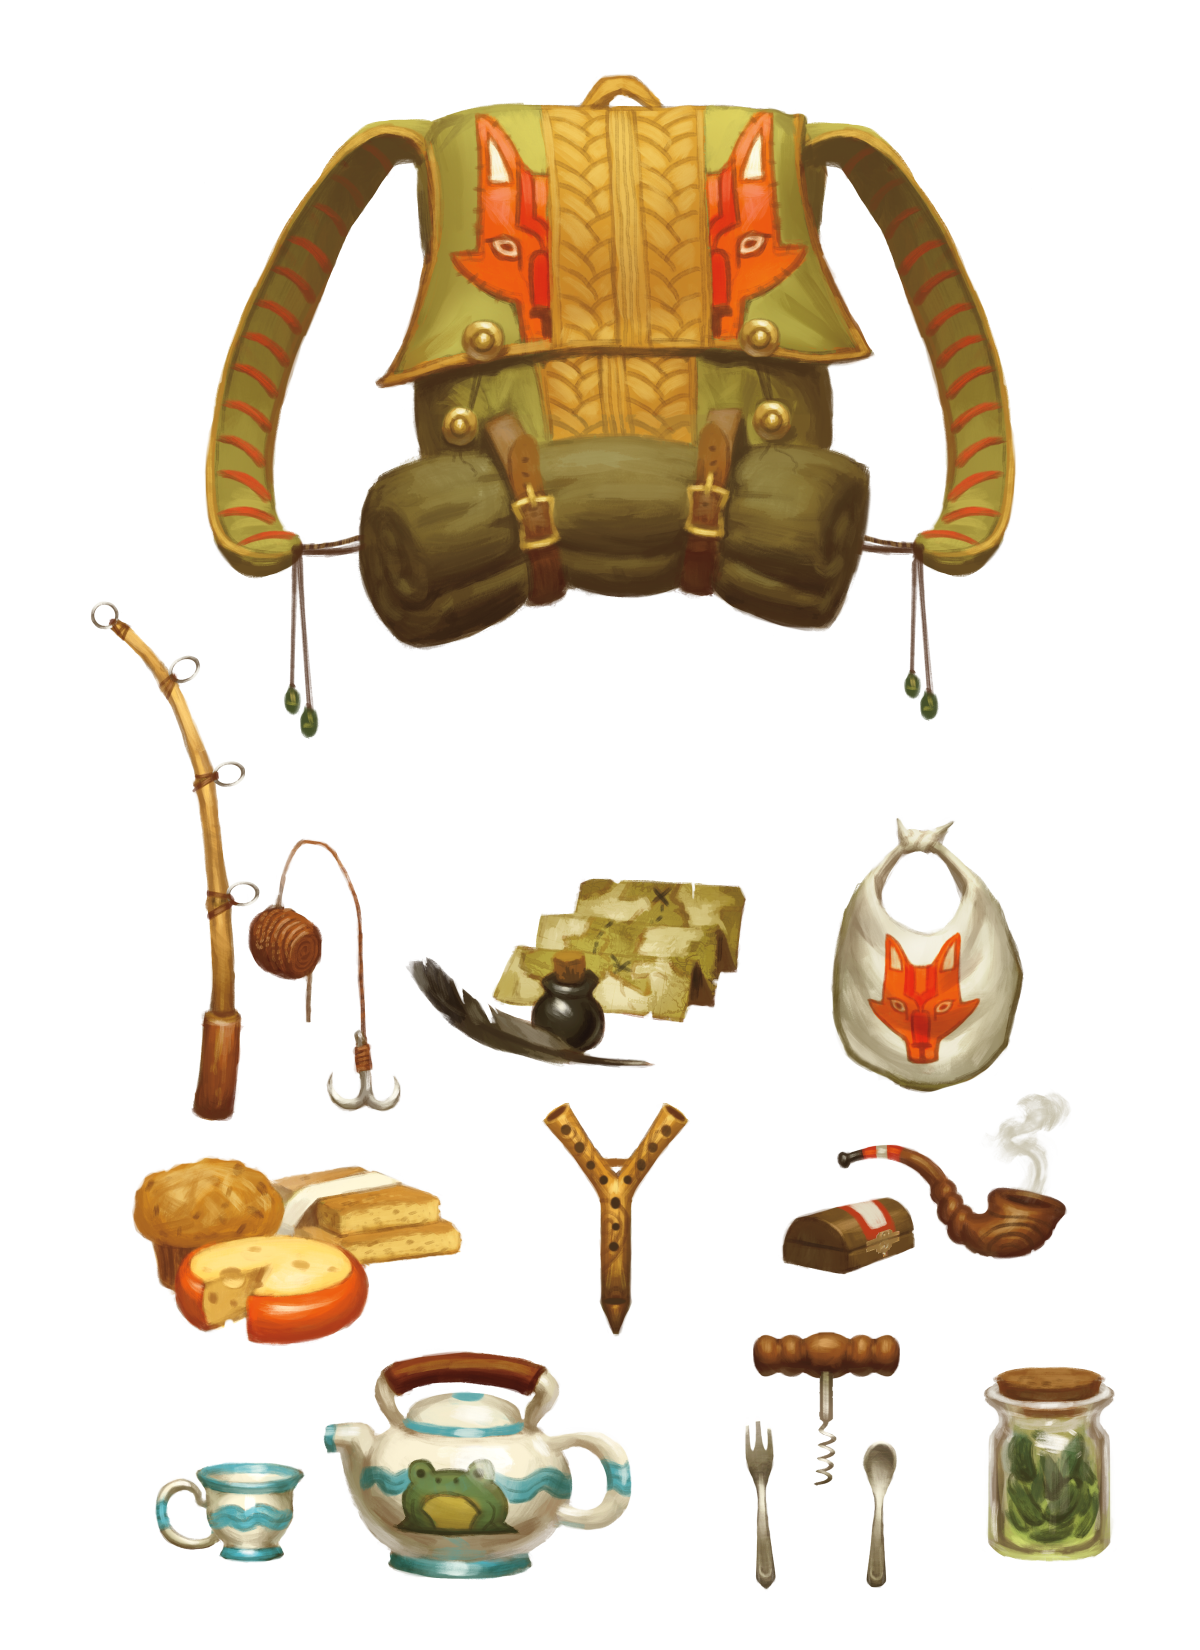 A collection of items including a backpack, fishing rod, a teapot and some cheese